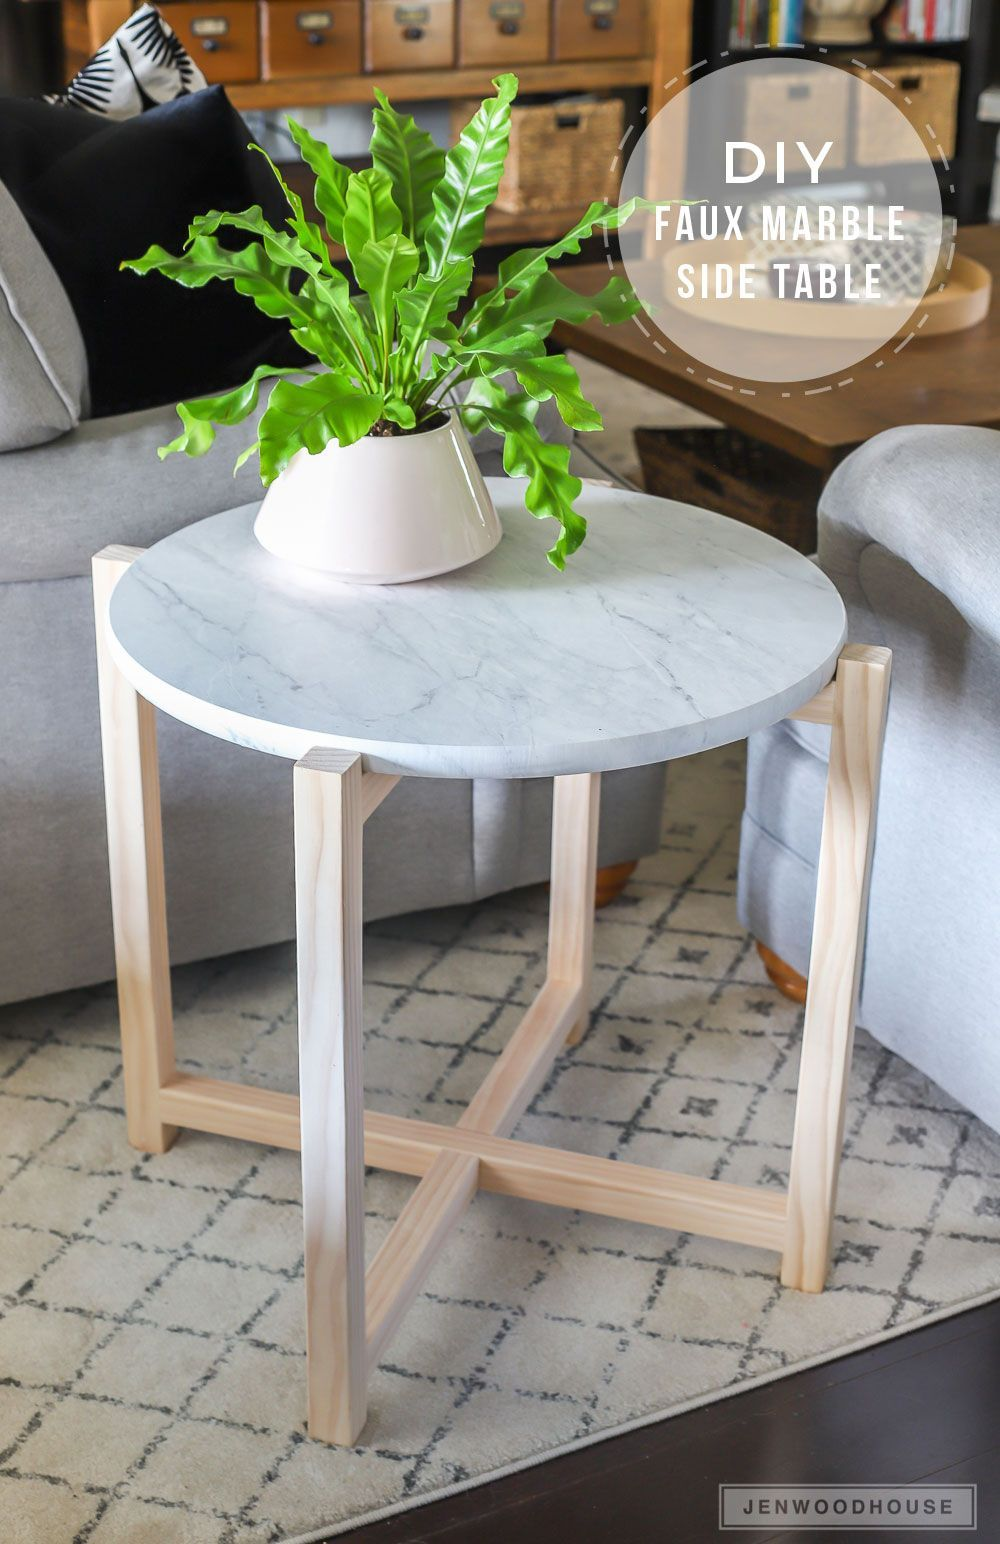 How To Build A Round Faux Marble Side Table Diy Side Table Marble Side Tables Faux Marble Coffee Table [ 1544 x 1000 Pixel ]